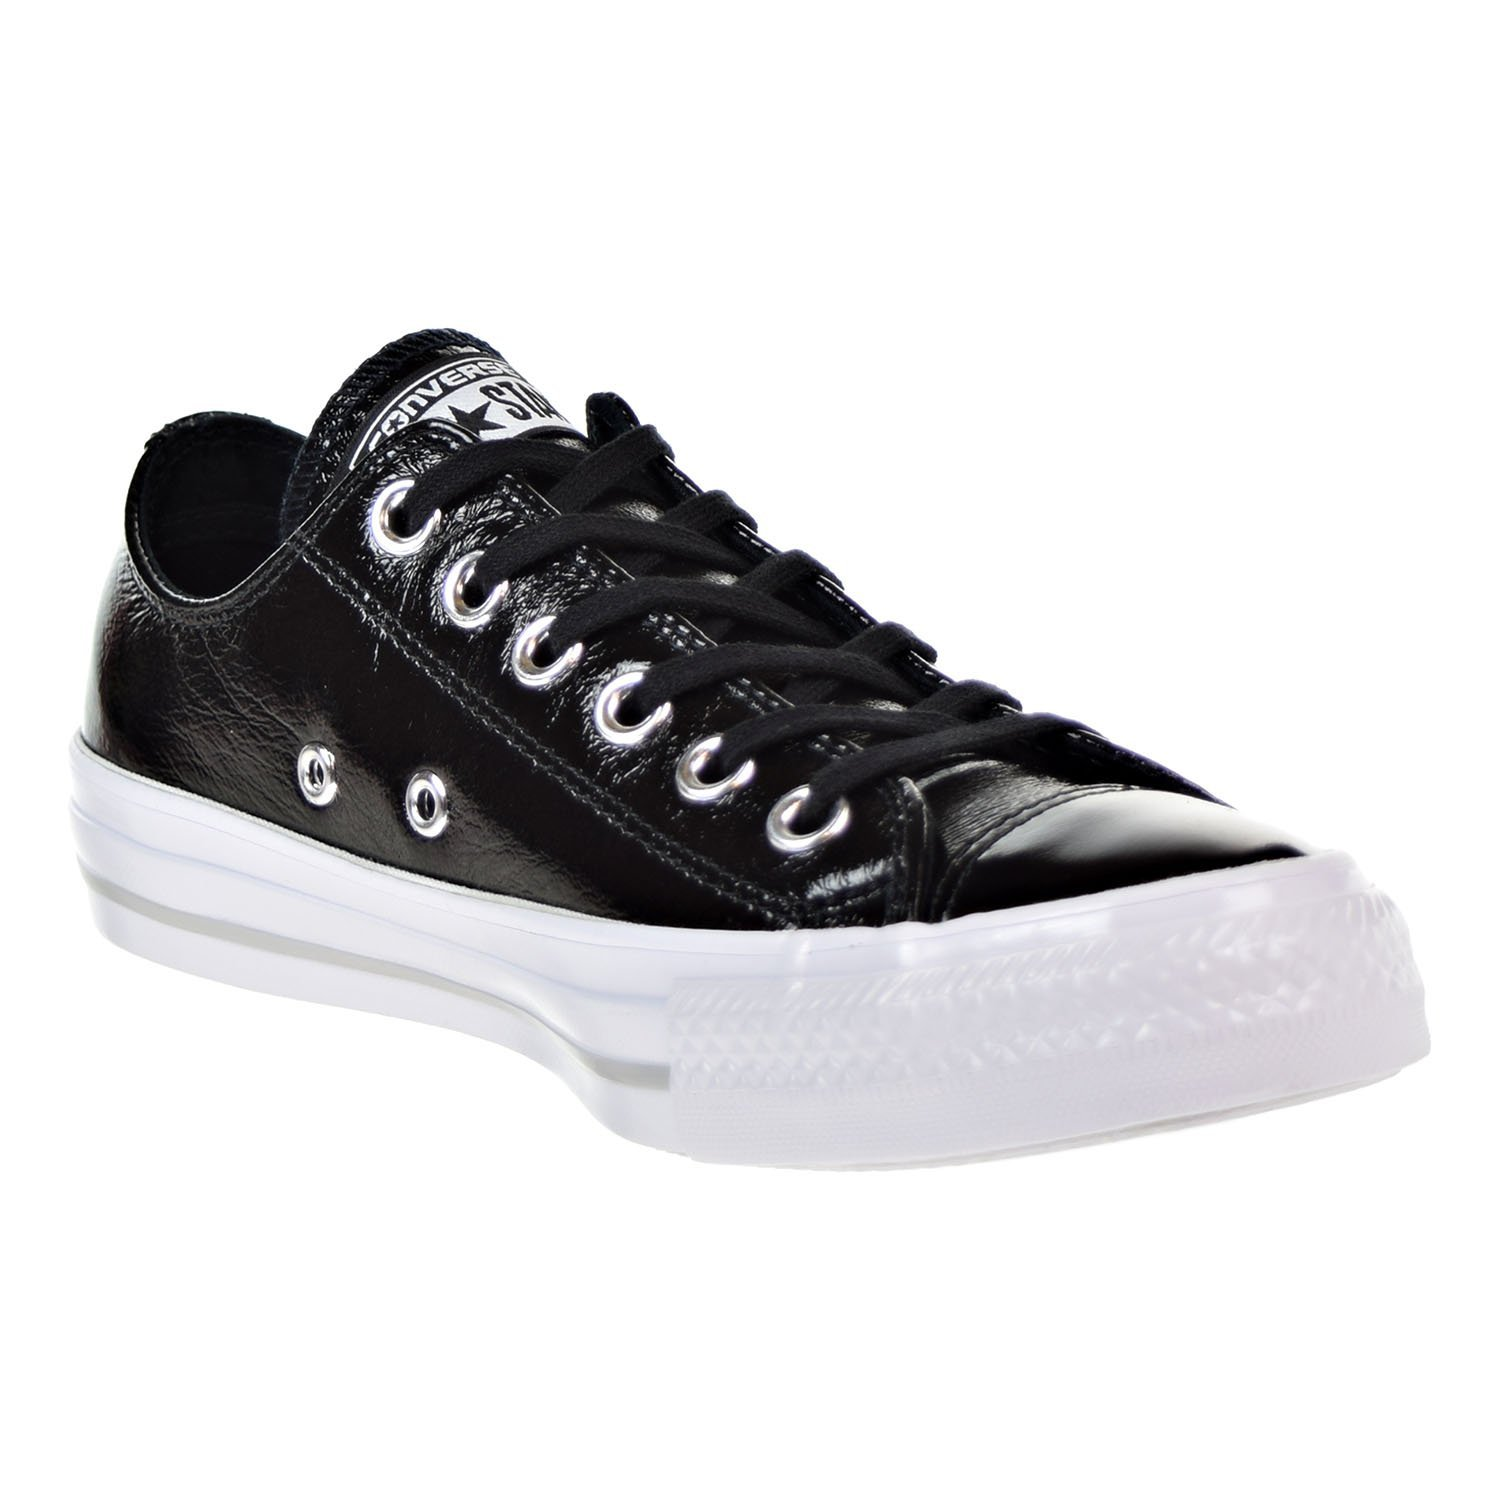 Converse Women's Chuck Taylor Ox Patent Casual Sneakers Black/White Size 8.0 j